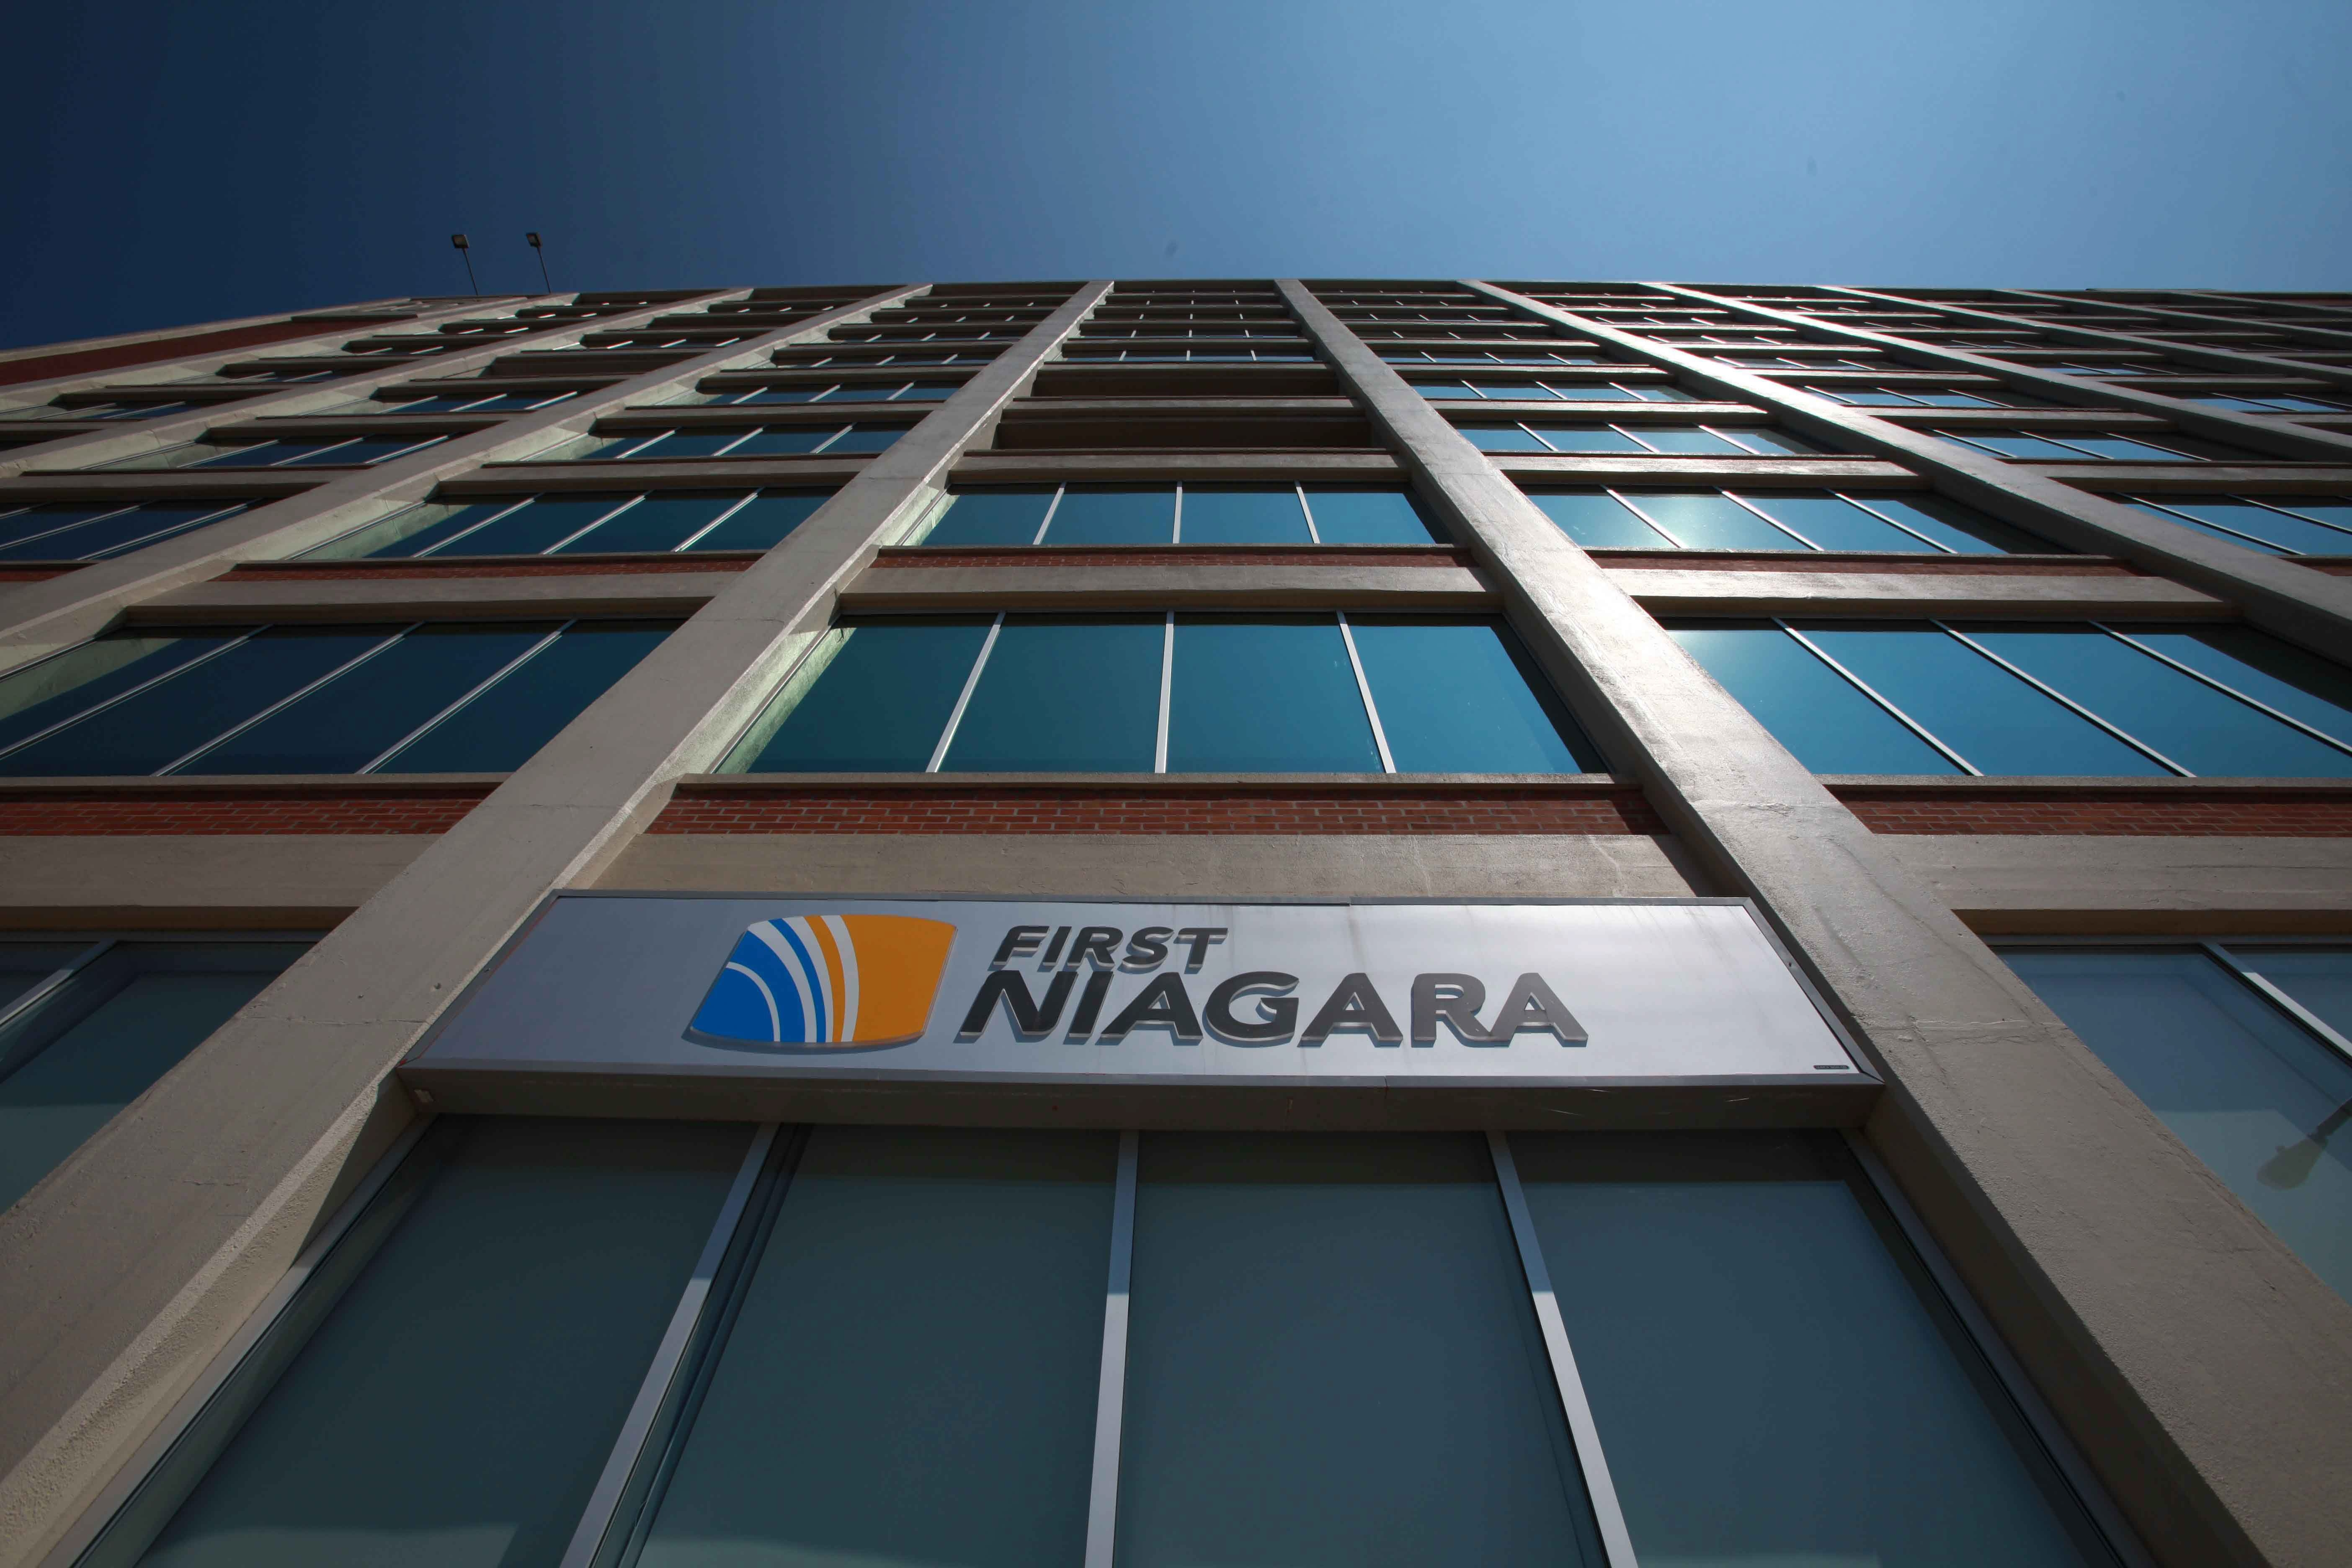 First Niagara Financial's pending deal with KeyCorp has led Assemblyman Michael P. Kearns to write the governor.